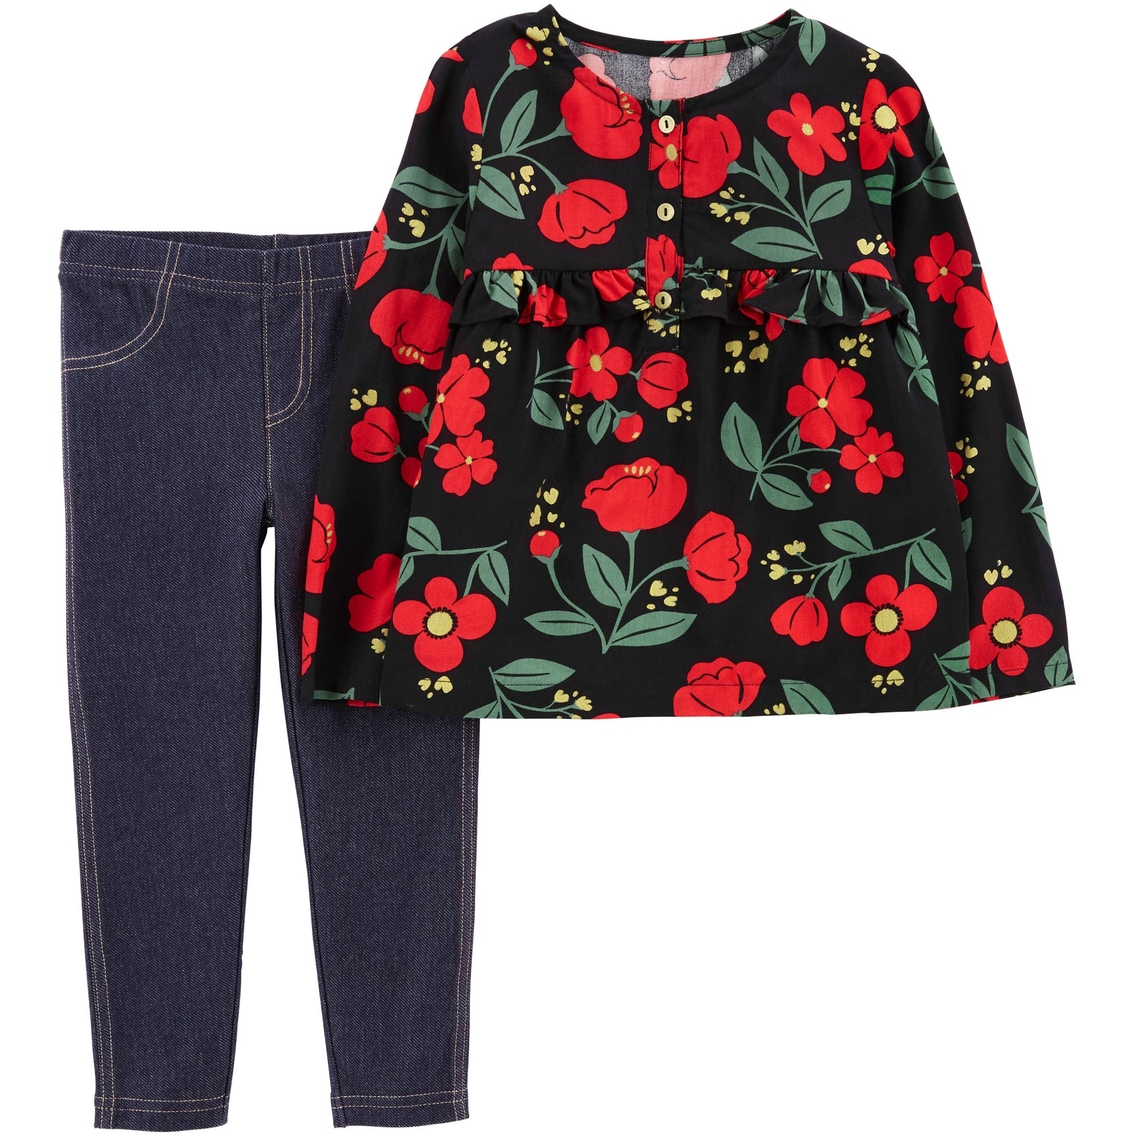 320e02820 Carter's Infant Girls 2 Pc. Floral Poplin Top And Jegging Set | Baby ...